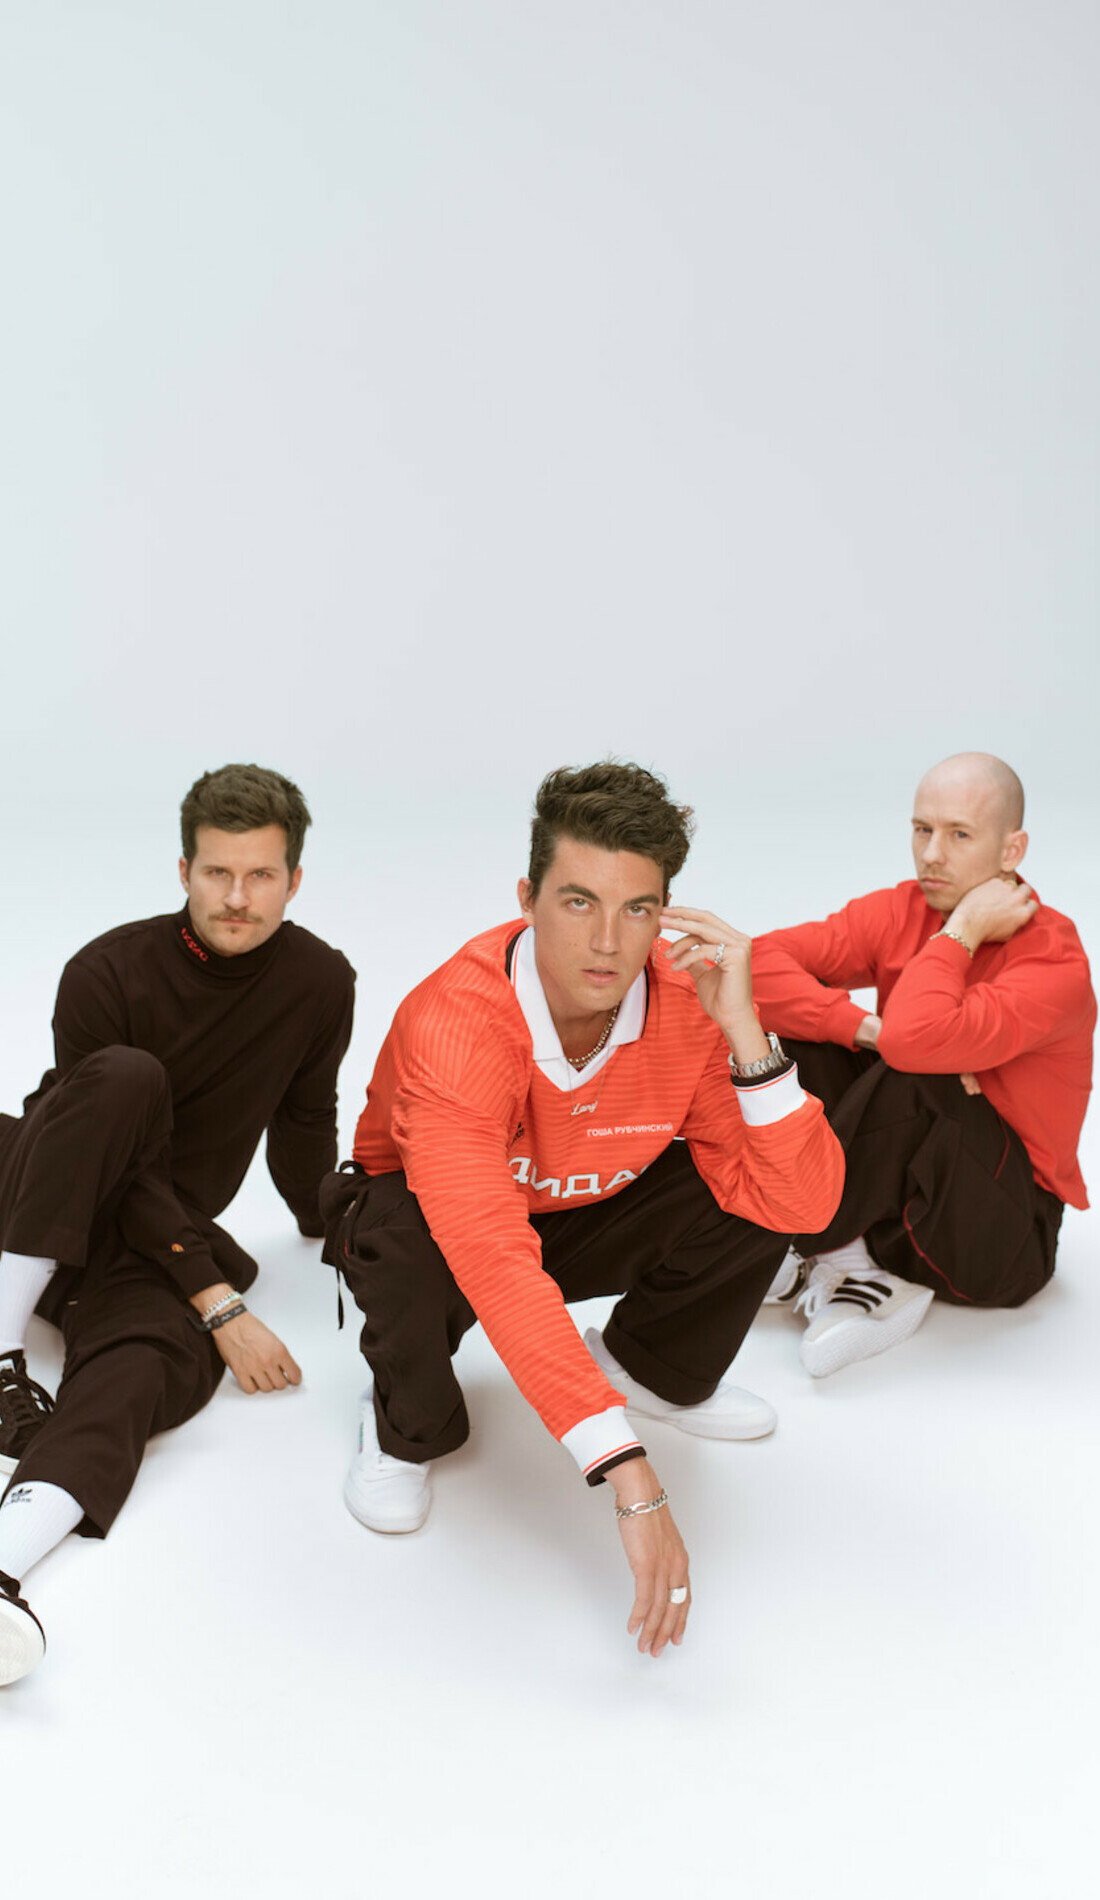 A LANY live event